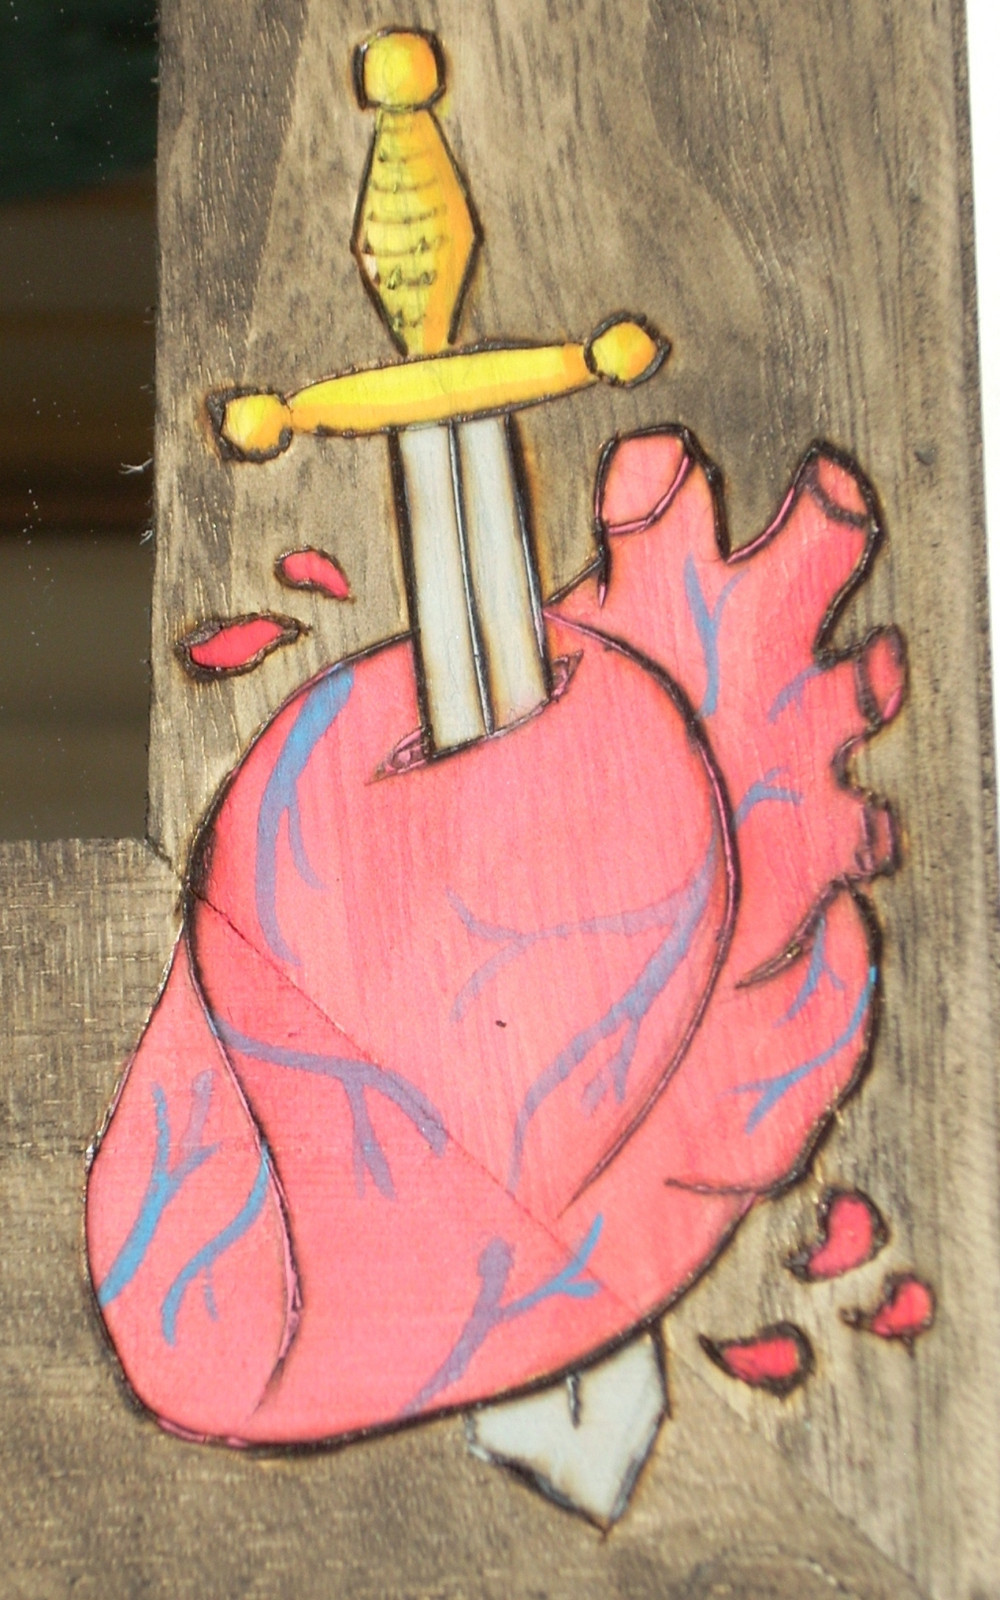 Snow White Haunted Mirror 183 A Wall Mirror 183 Drawing